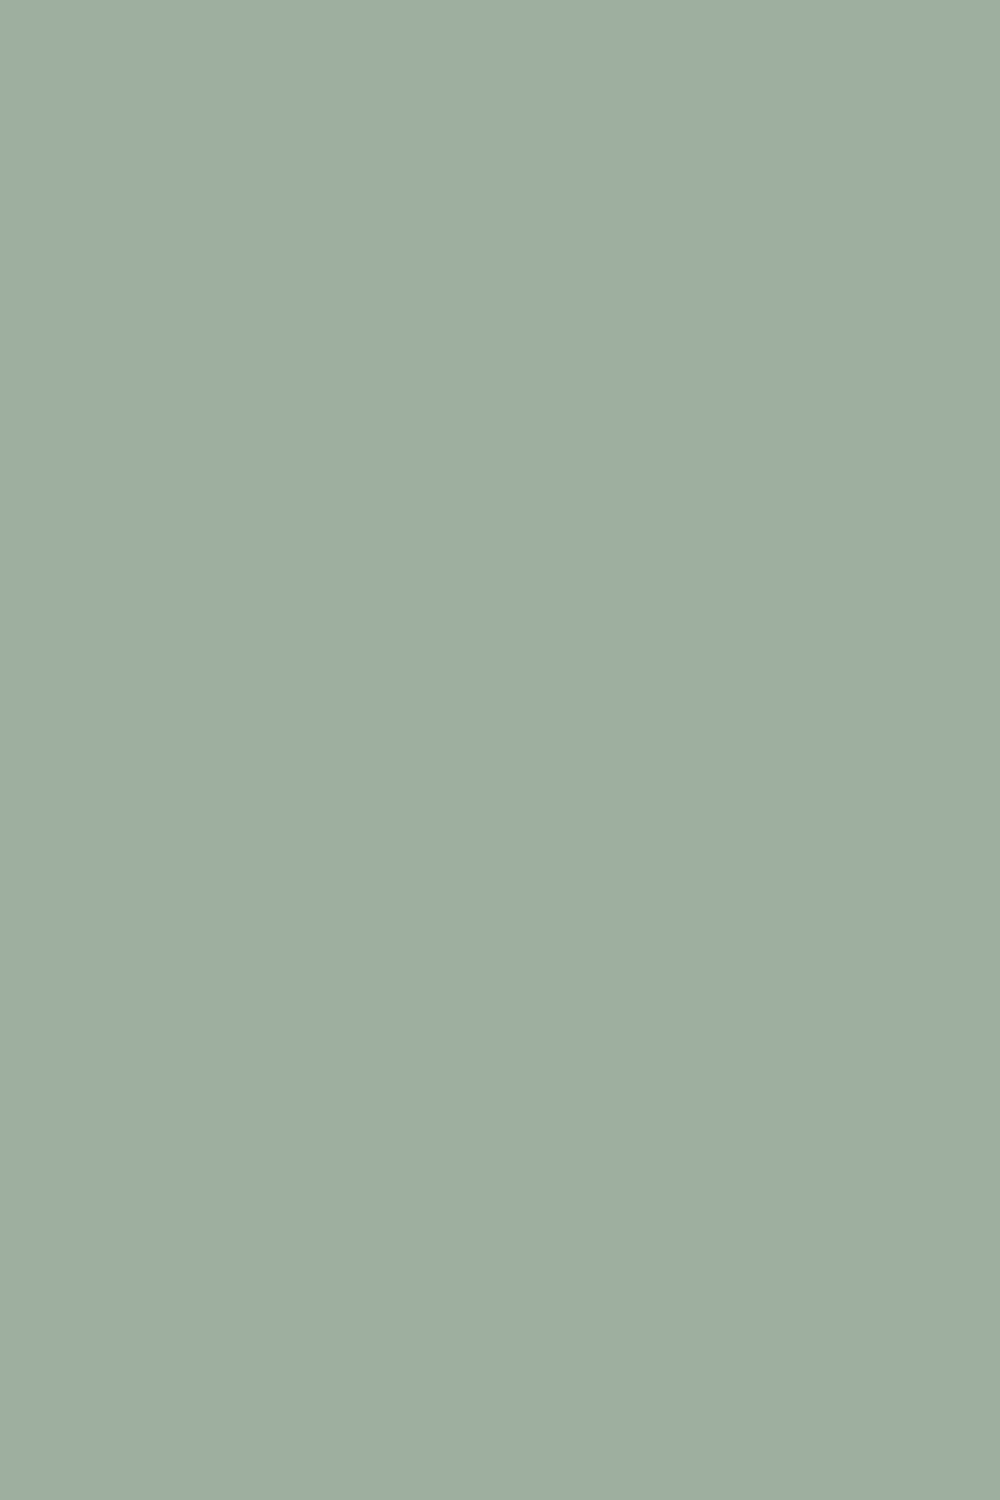 Teal Blue Kitchen Cabinets Farrow & Ball Green Blue - Interiors By Color (6 Interior